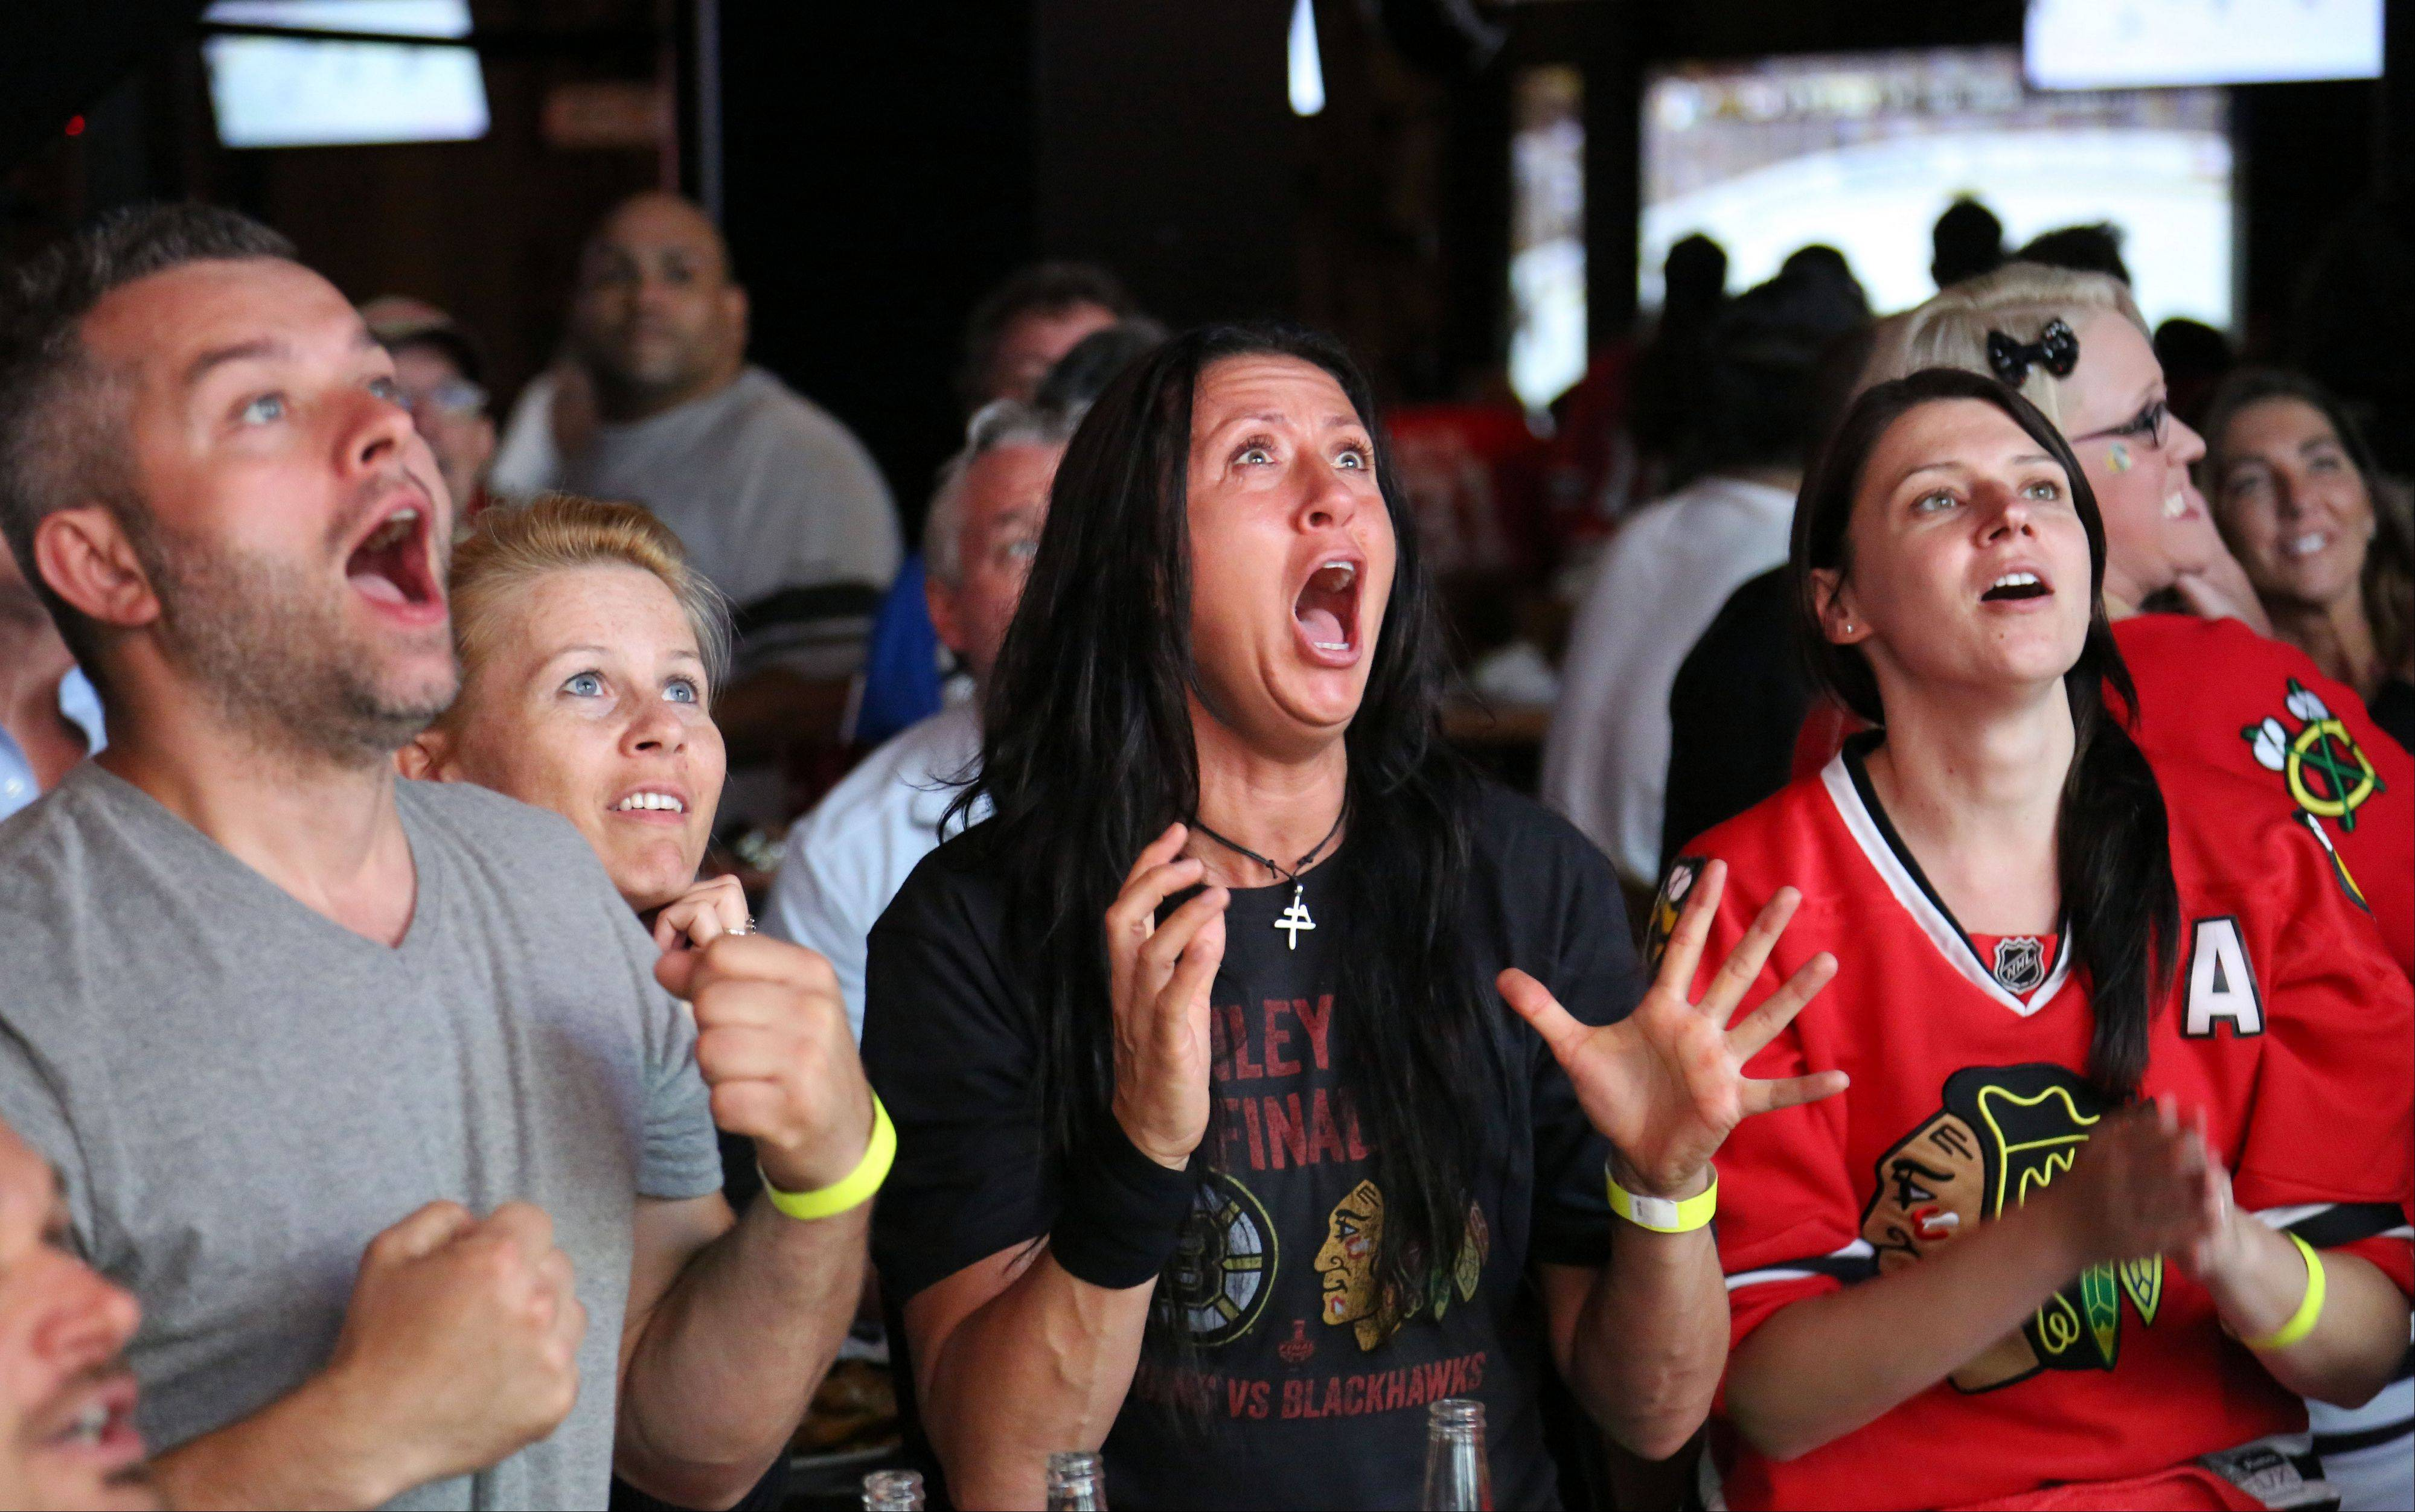 Hawks fans cheer after Jonathan Toews' goal in the second period as they watch game six of the Stanley Cup Finals at Toby Keith's I Love This Bar in Rosemont Monday night.